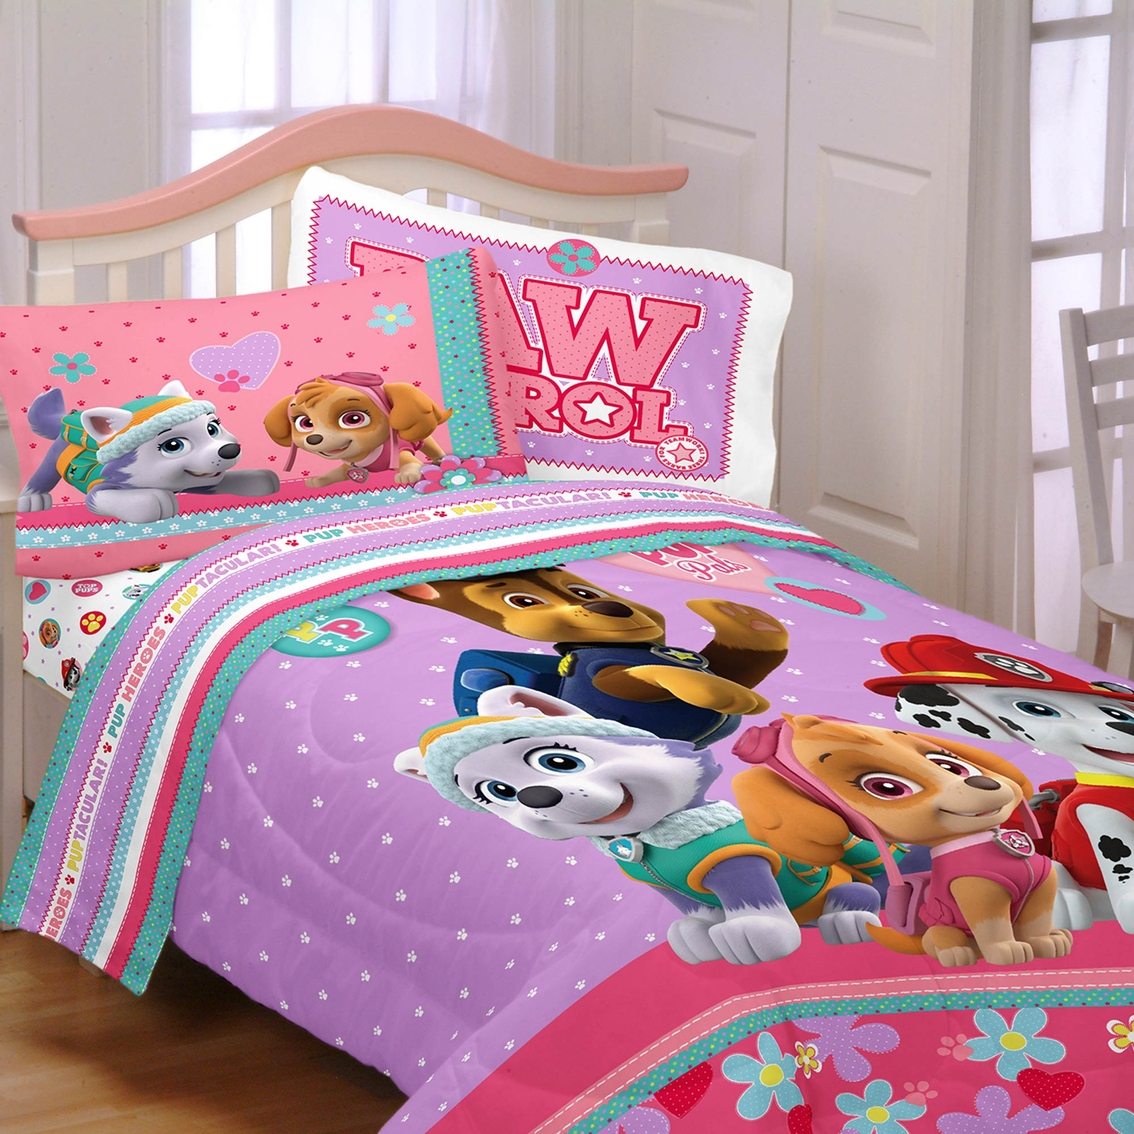 Sub Wiring Diagram Comforter Diagrams Ohm Subwoofer Likewise Dual Voice Coil Speaker Nickelodeon Girls Paw Patrol Best Pup Pals Twin Full Rh Shopmyexchange Com Guide 2